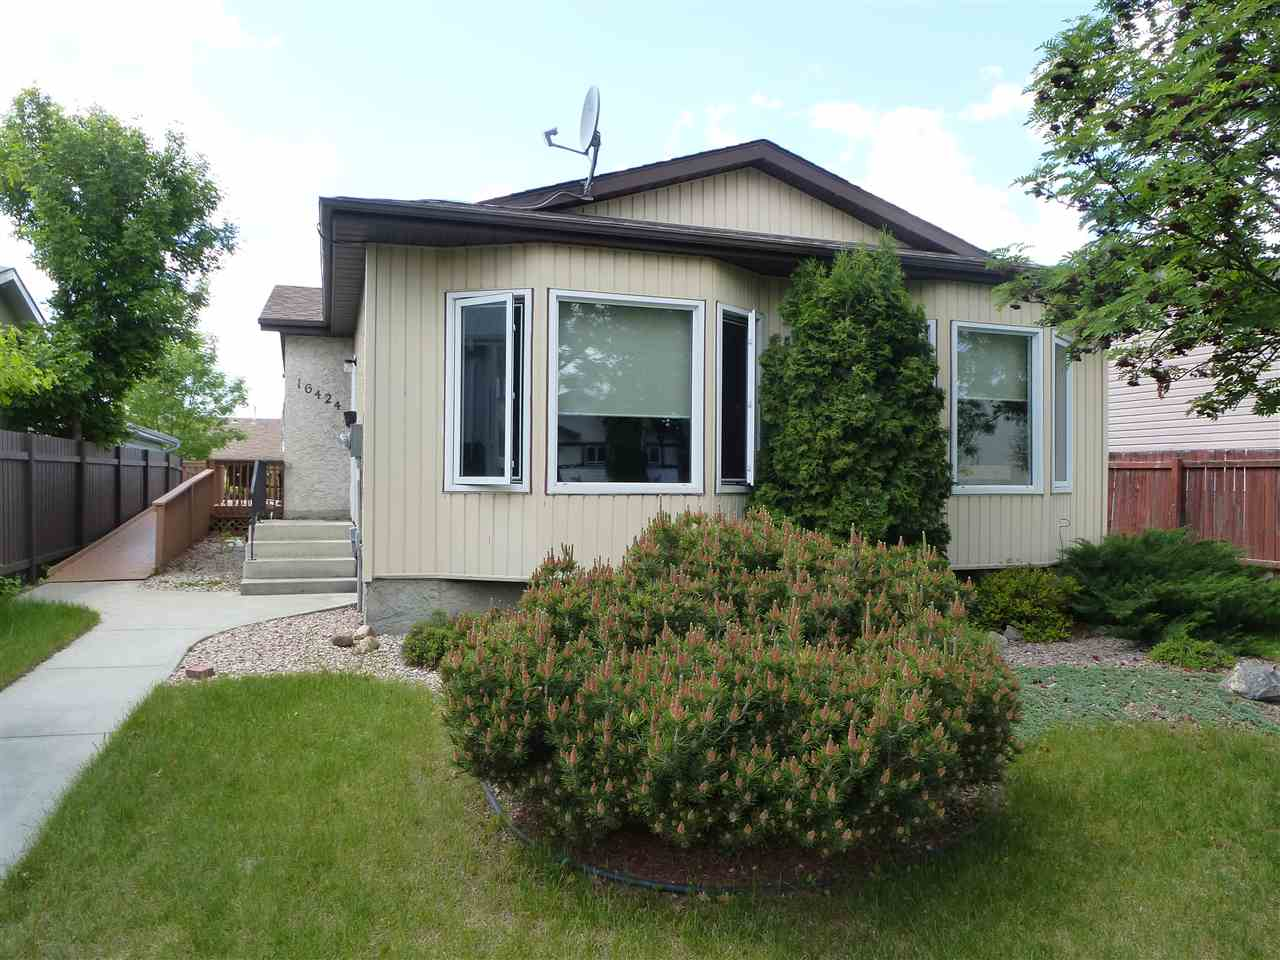 Photo 1: 16424 100 Street in Edmonton: Zone 27 House for sale : MLS(r) # E4059470